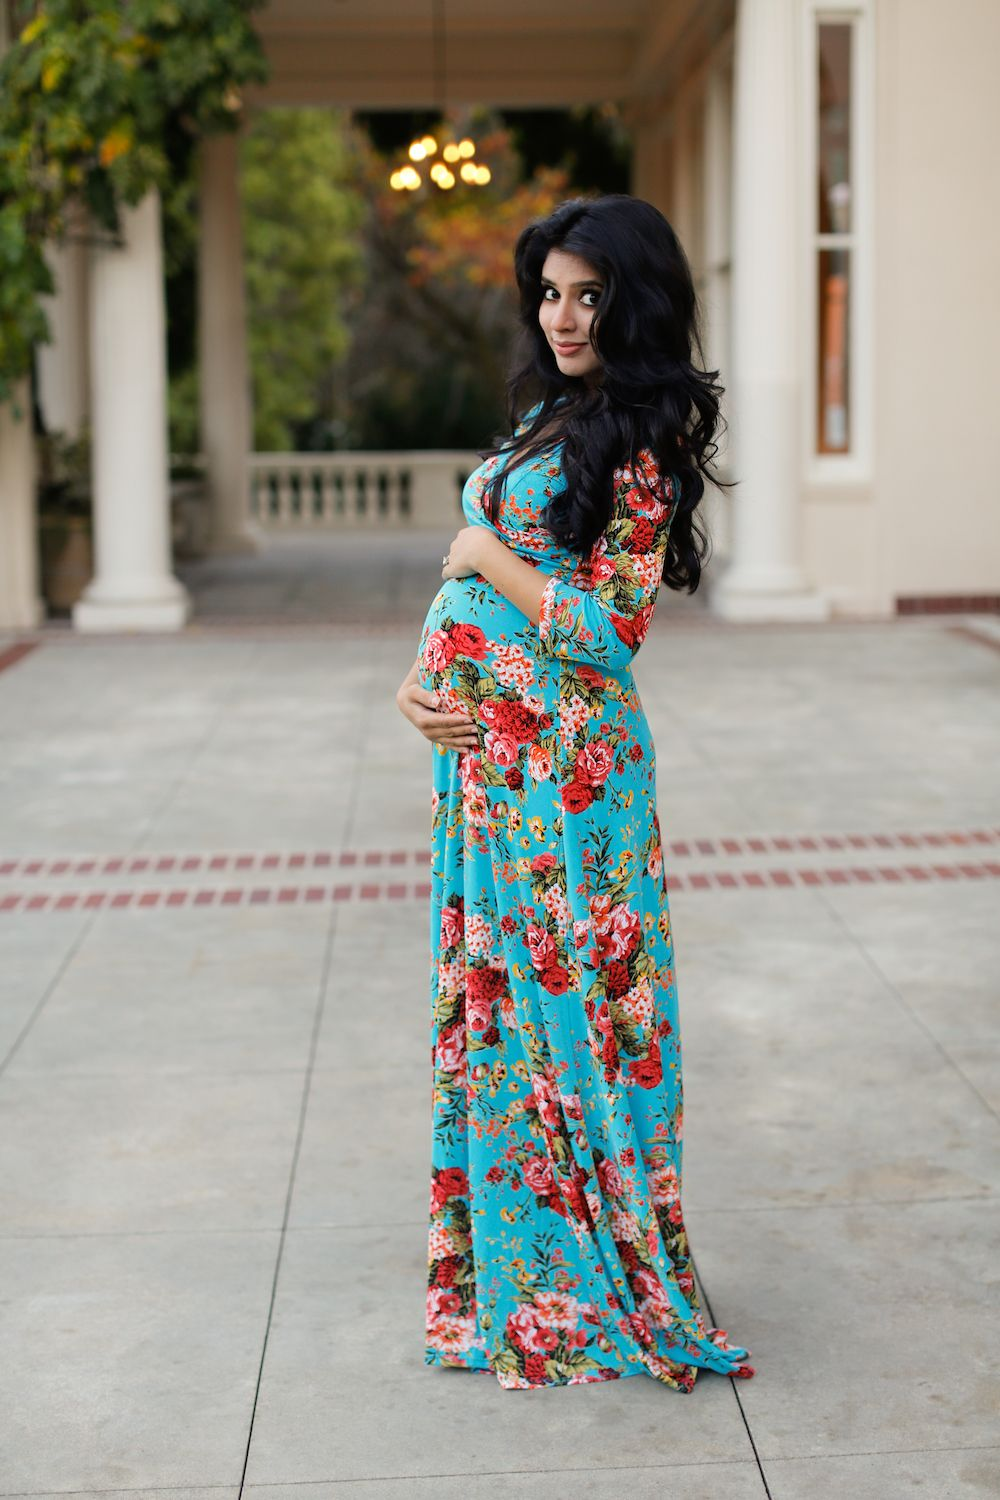 Who says maternity dresses have to be boring this aqua floral who says maternity dresses have to be boring this aqua floral wrap dress from pink blush maternity is sooo comfortable and stylish ombrellifo Gallery